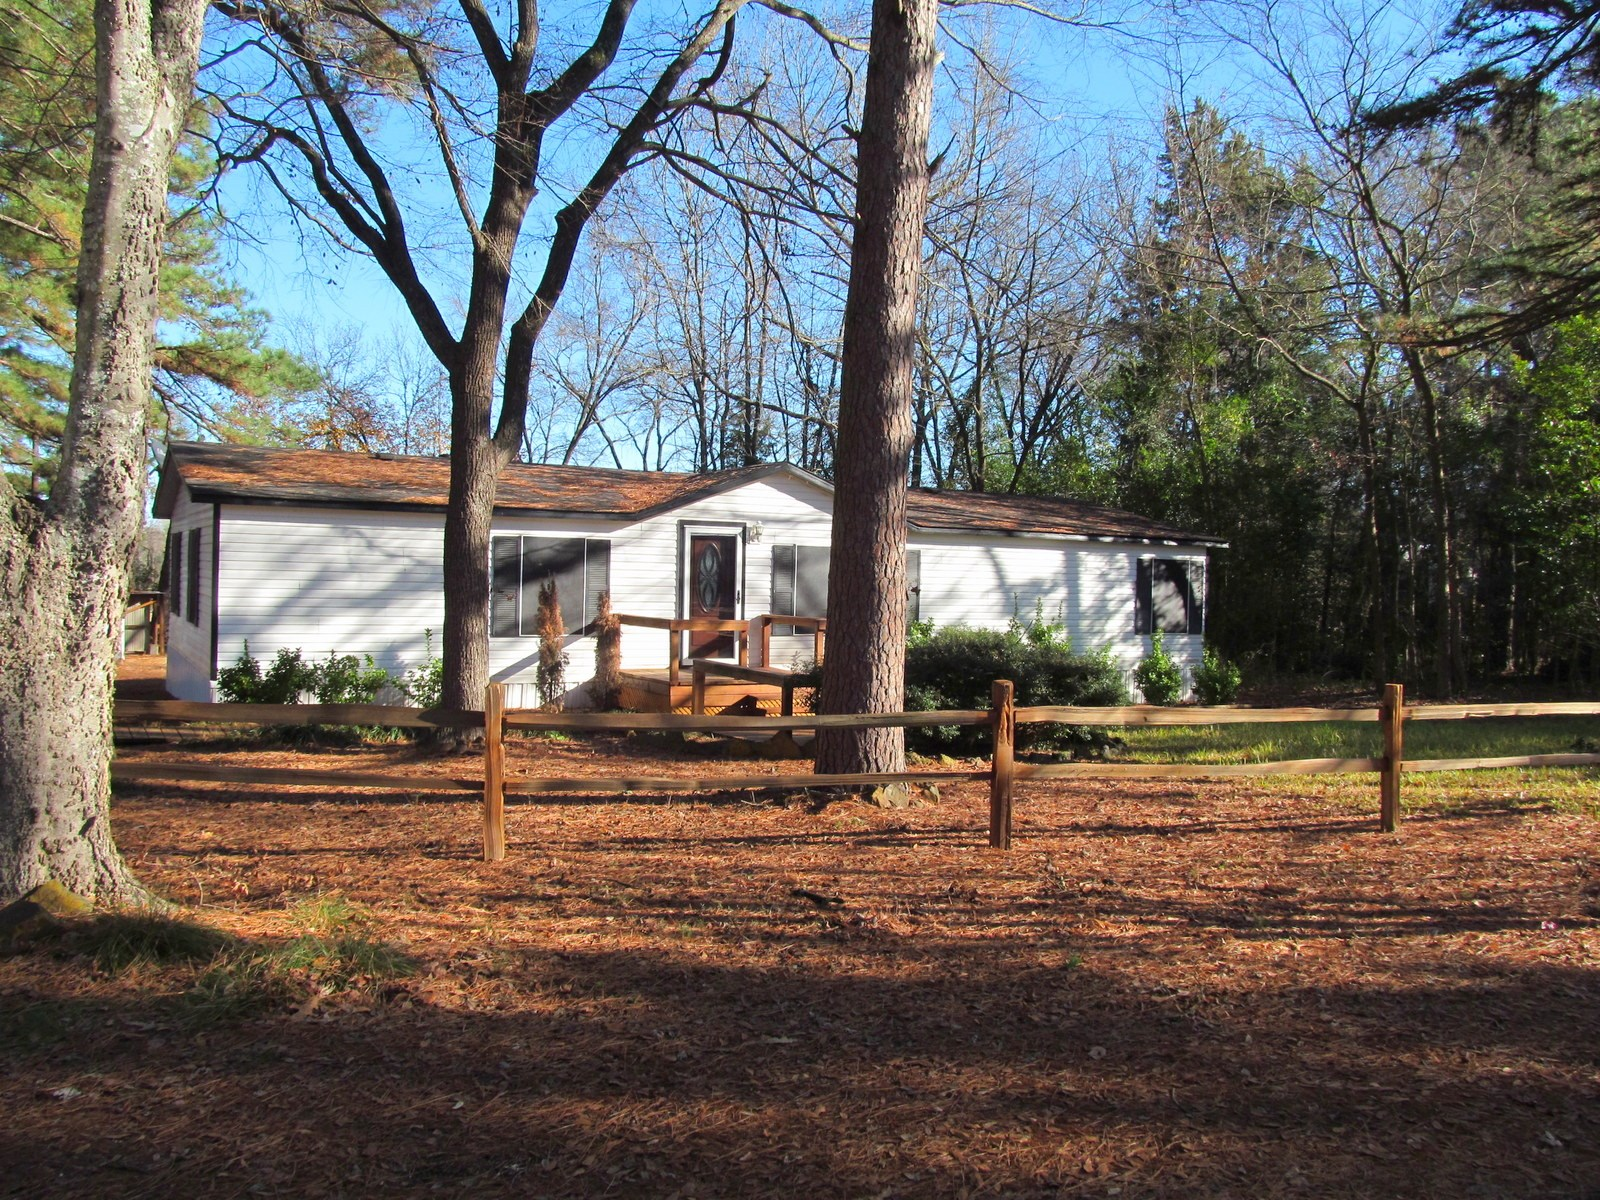 4/2/1 MANUFACTURED HOME ON 1.33 ACRES BY LAKE QUITMAN, TEXAS